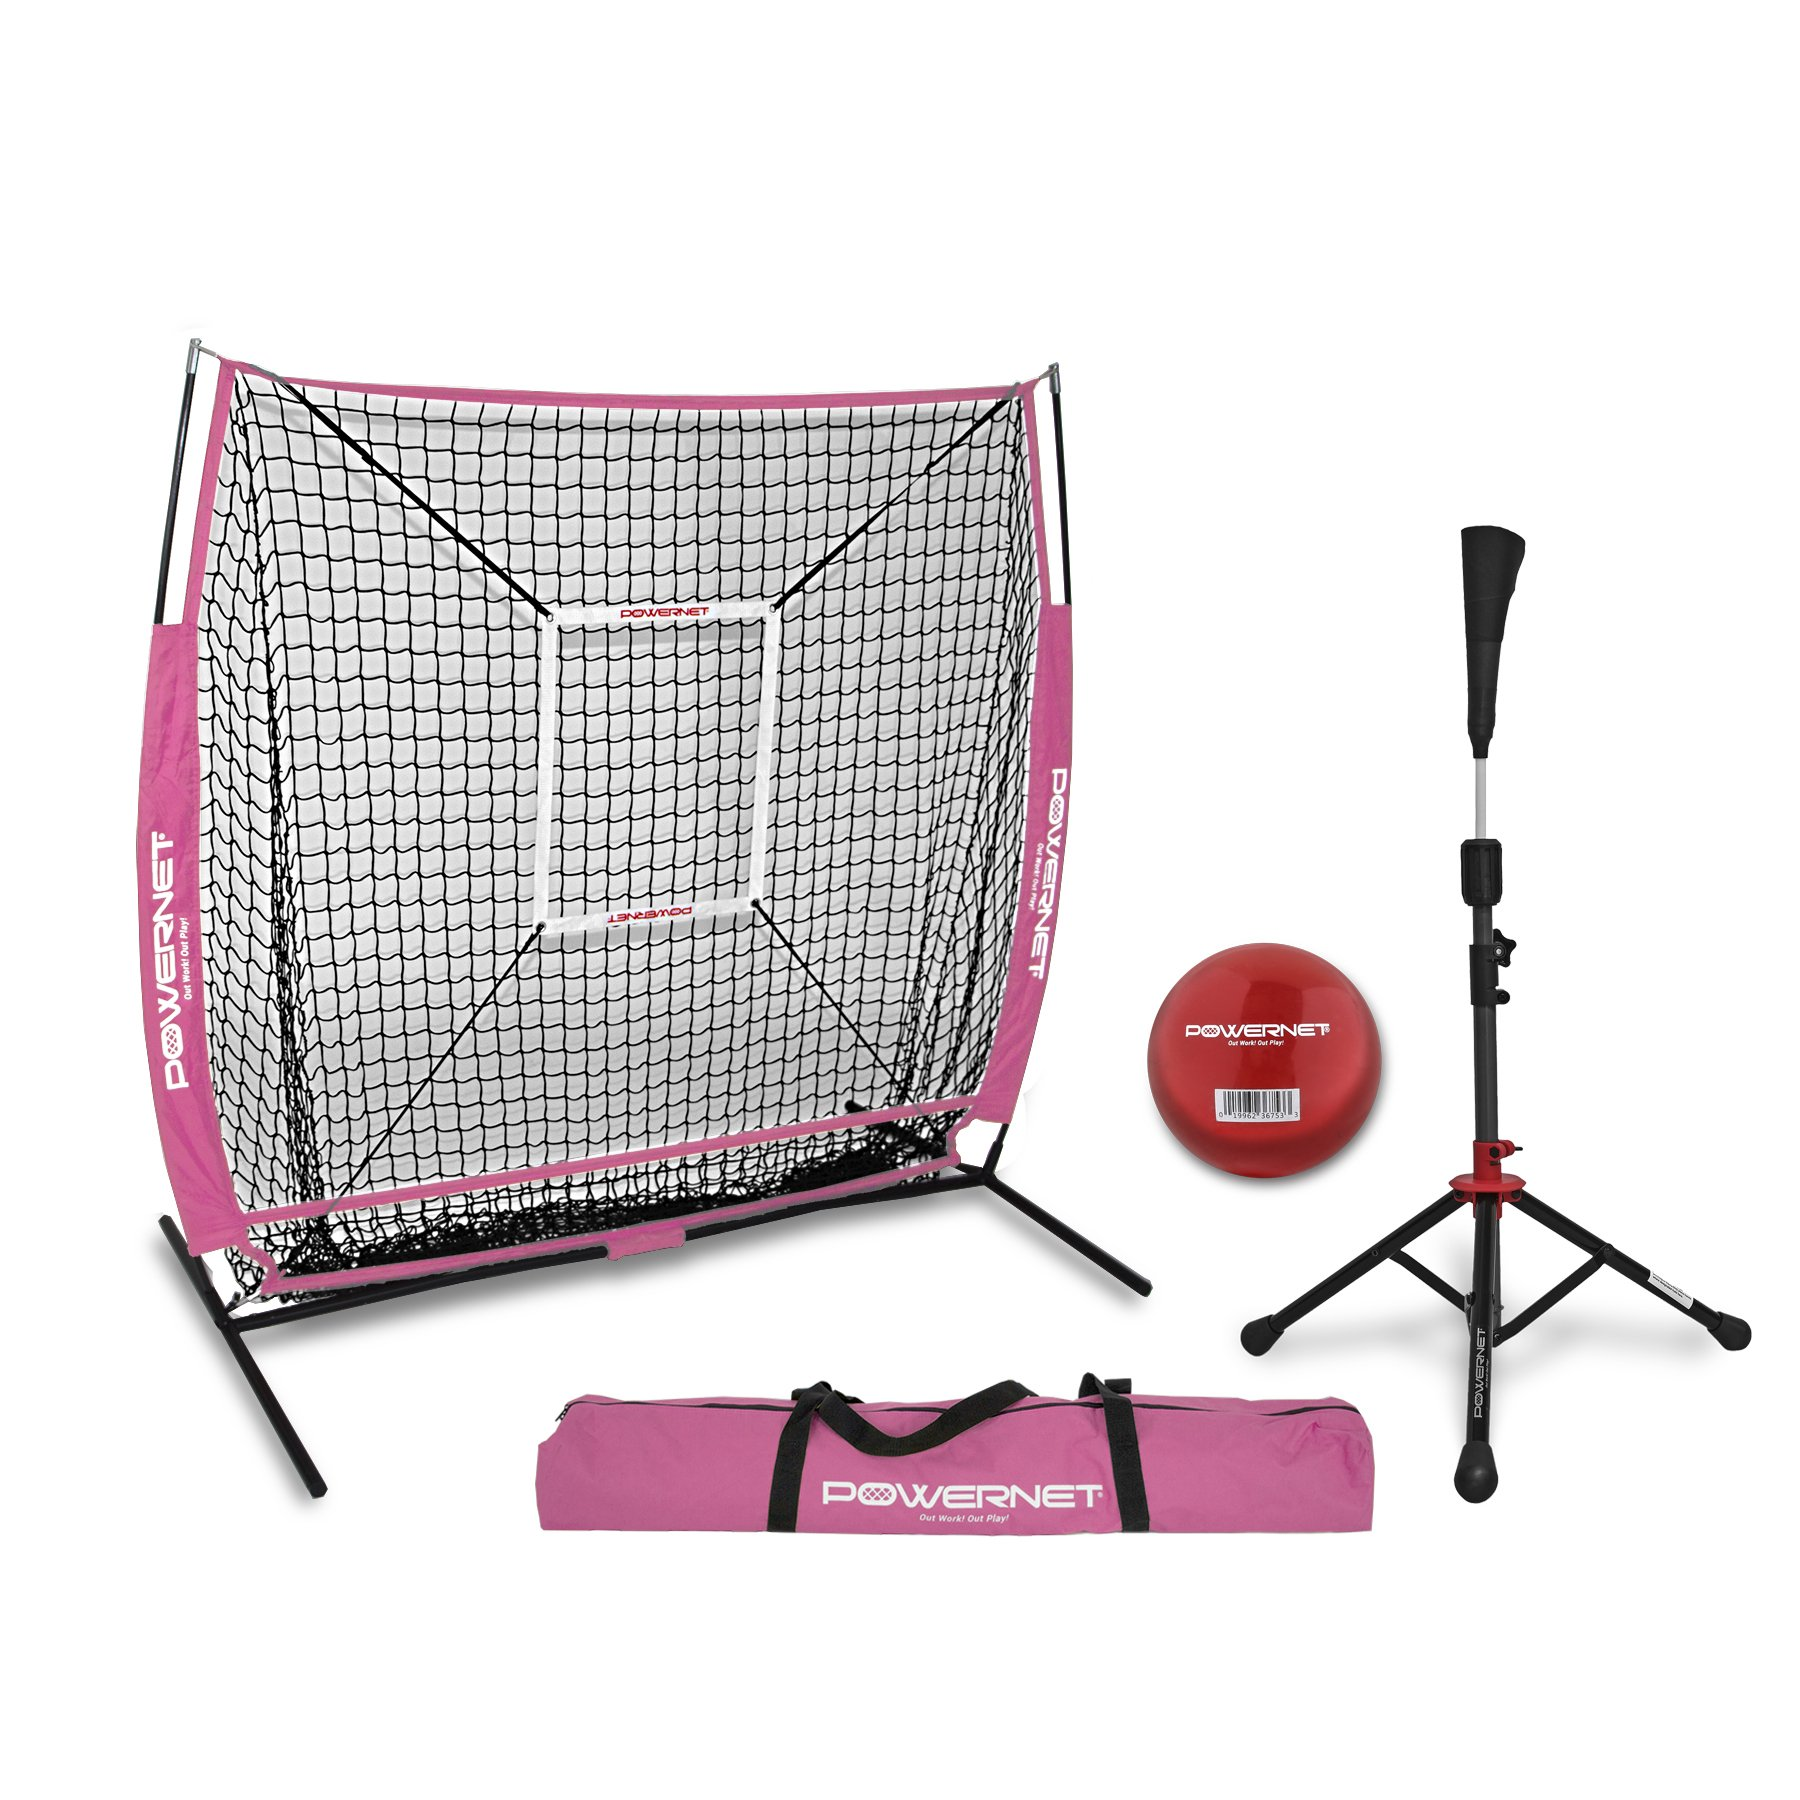 PowerNet 5x5 Practice Net + Deluxe Tee + Strike Zone + Weighted Training Ball Bundle (Pink) | Baseball Softball Pitching Batting Coaching Pack | Work on Pitch Accuracy | Build Plate Confidence